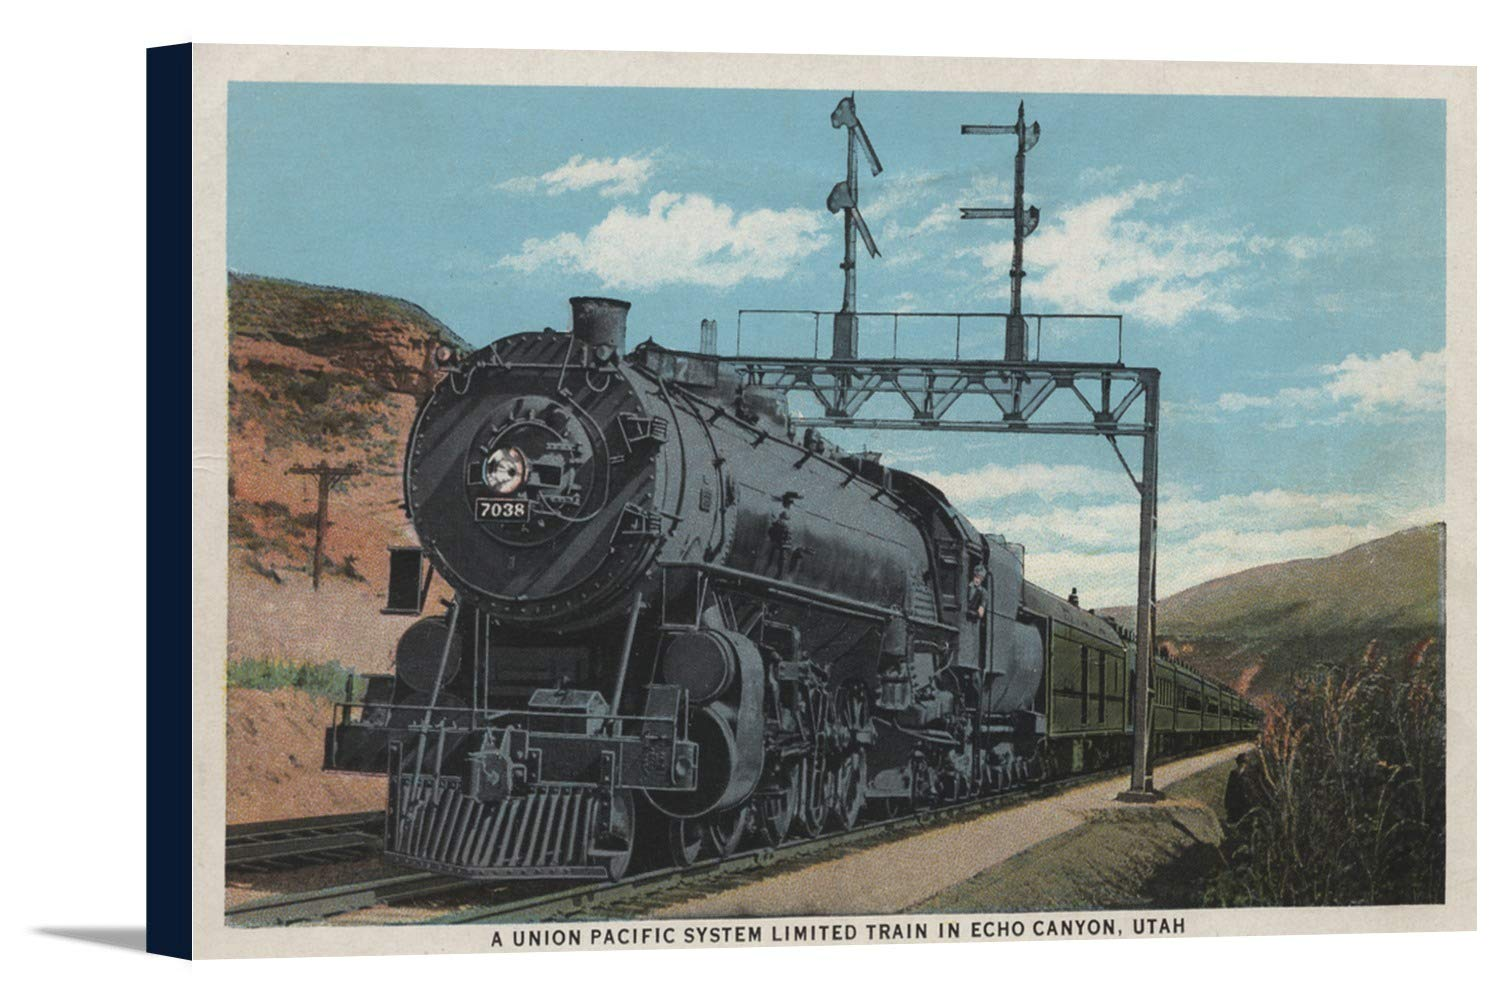 Union Pacificトレイン、Echo Canyon , Utah 36 x 22 1/2 Gallery Canvas LANT-3P-SC-7317-24x36 36 x 22 1/2 Gallery Canvas  B0184A1K6K